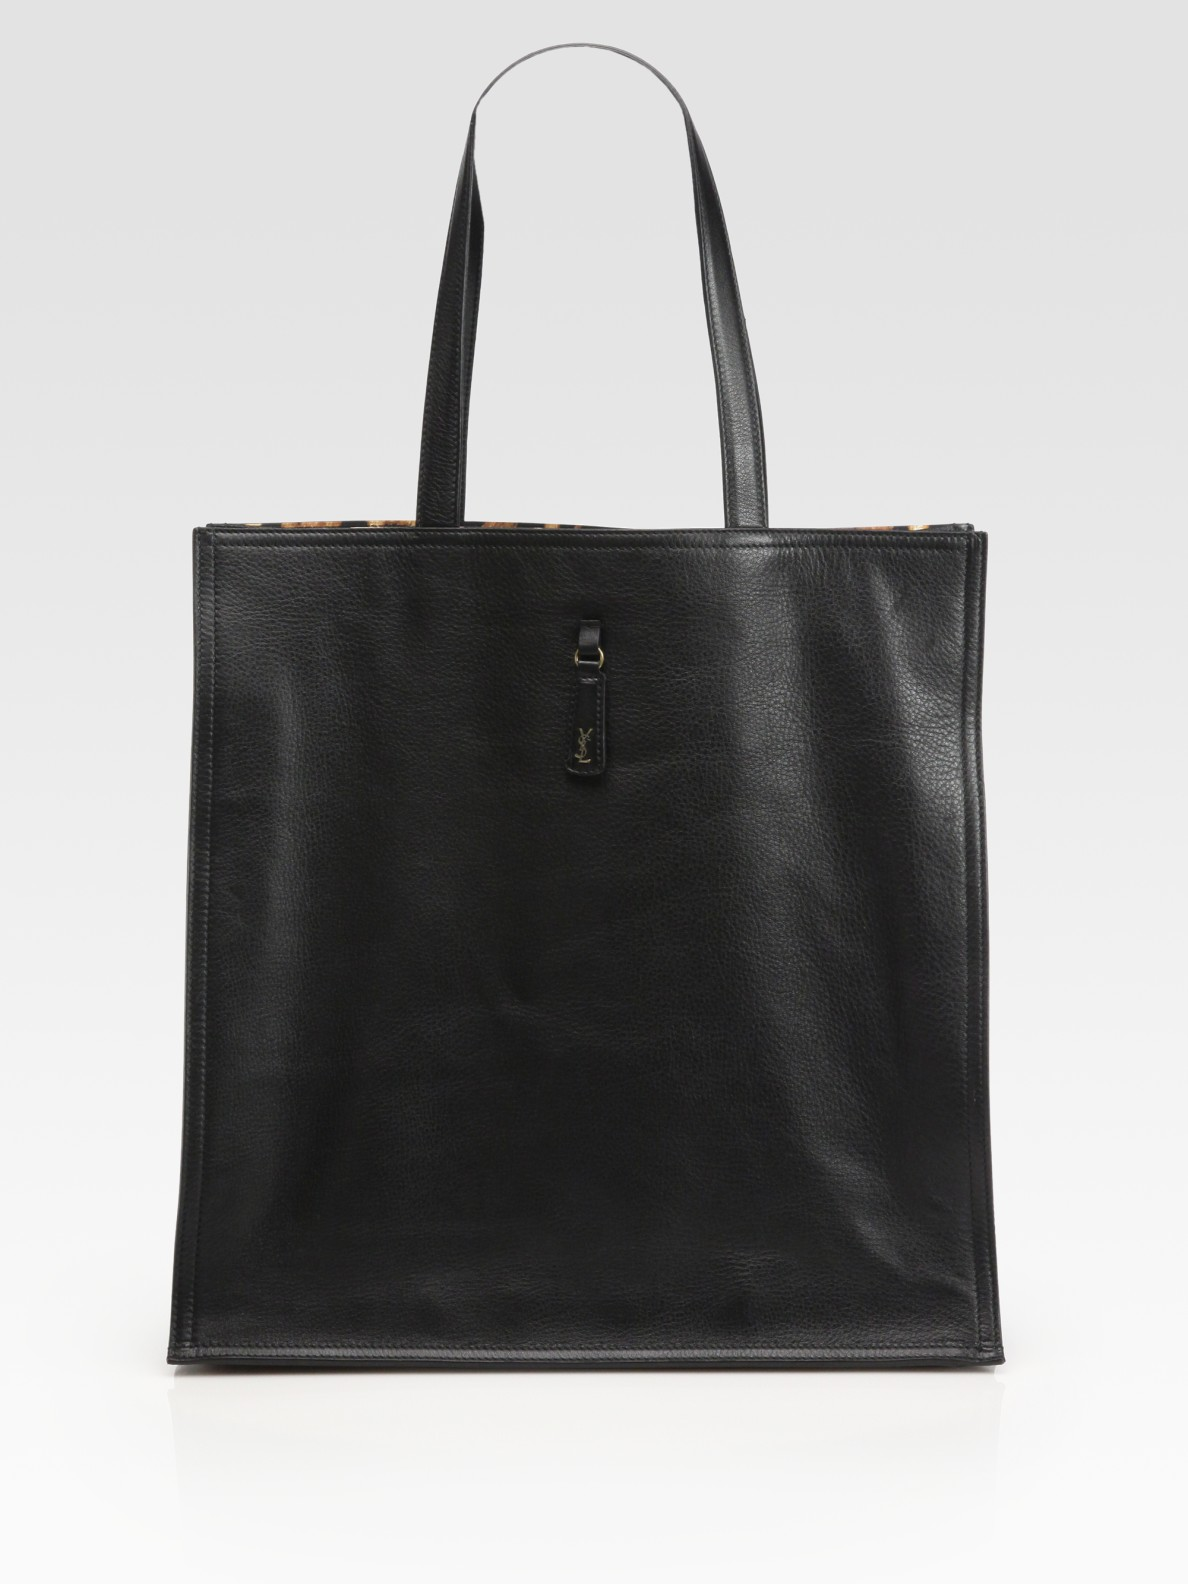 Saint Laurent Ysl Large Leather Tote Bag In Black Lyst